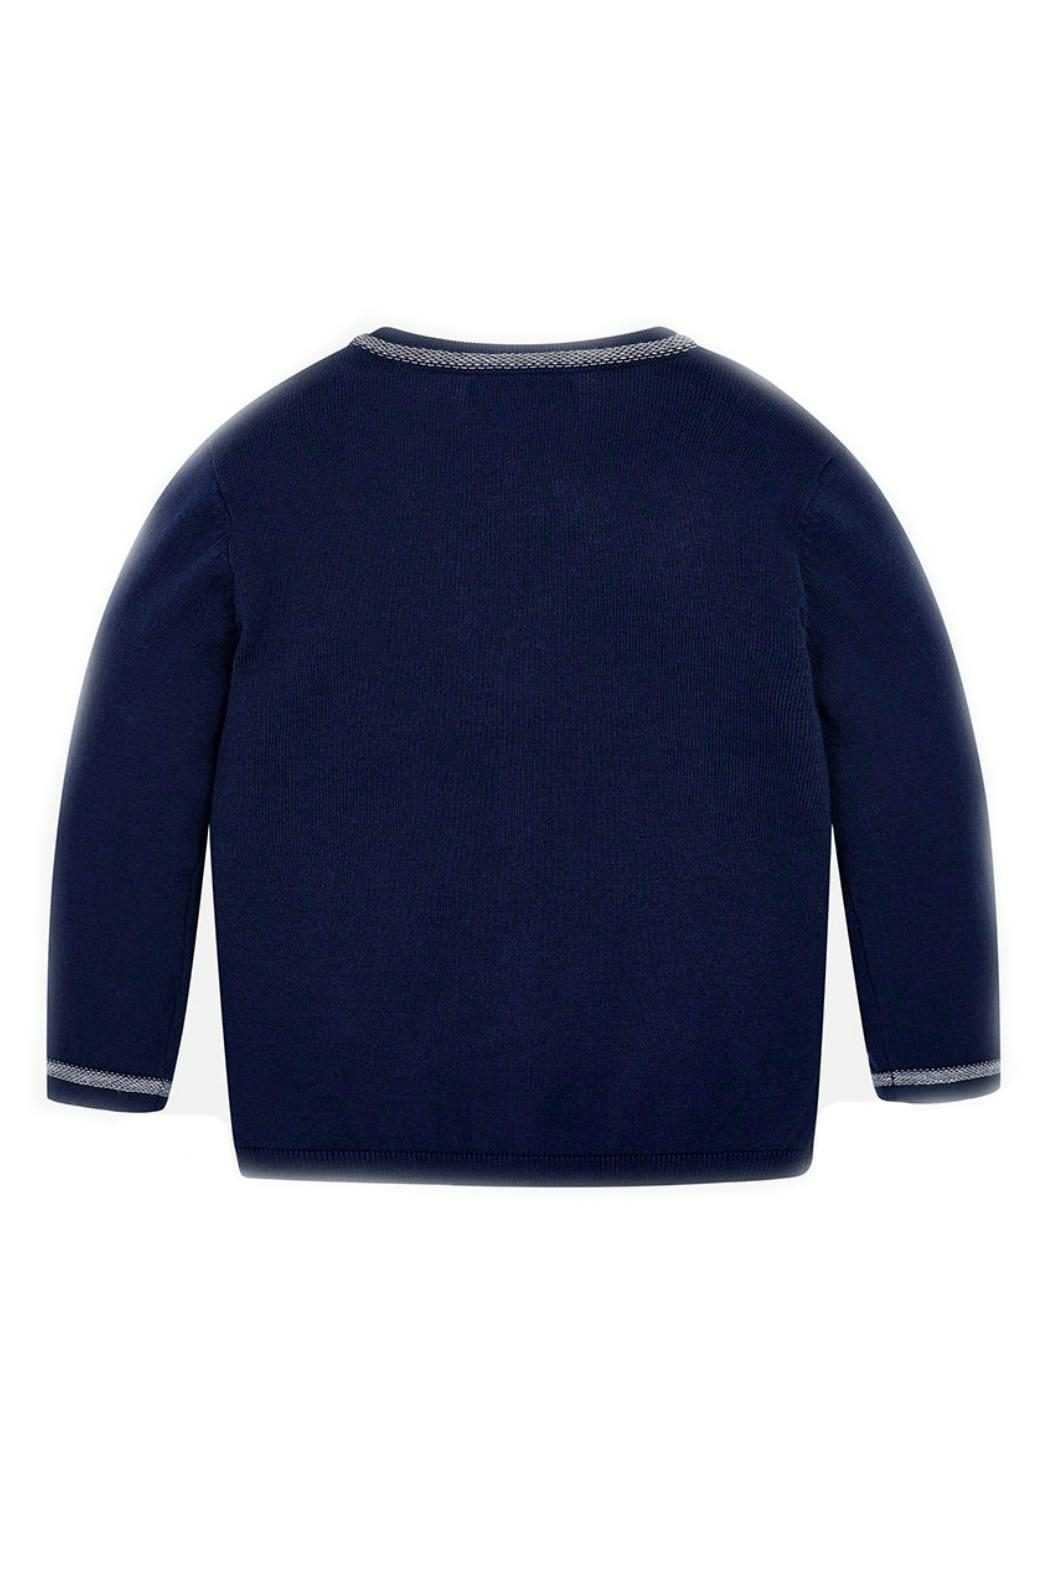 Mayoral Navy-Blue Classic Cardigan - Front Full Image